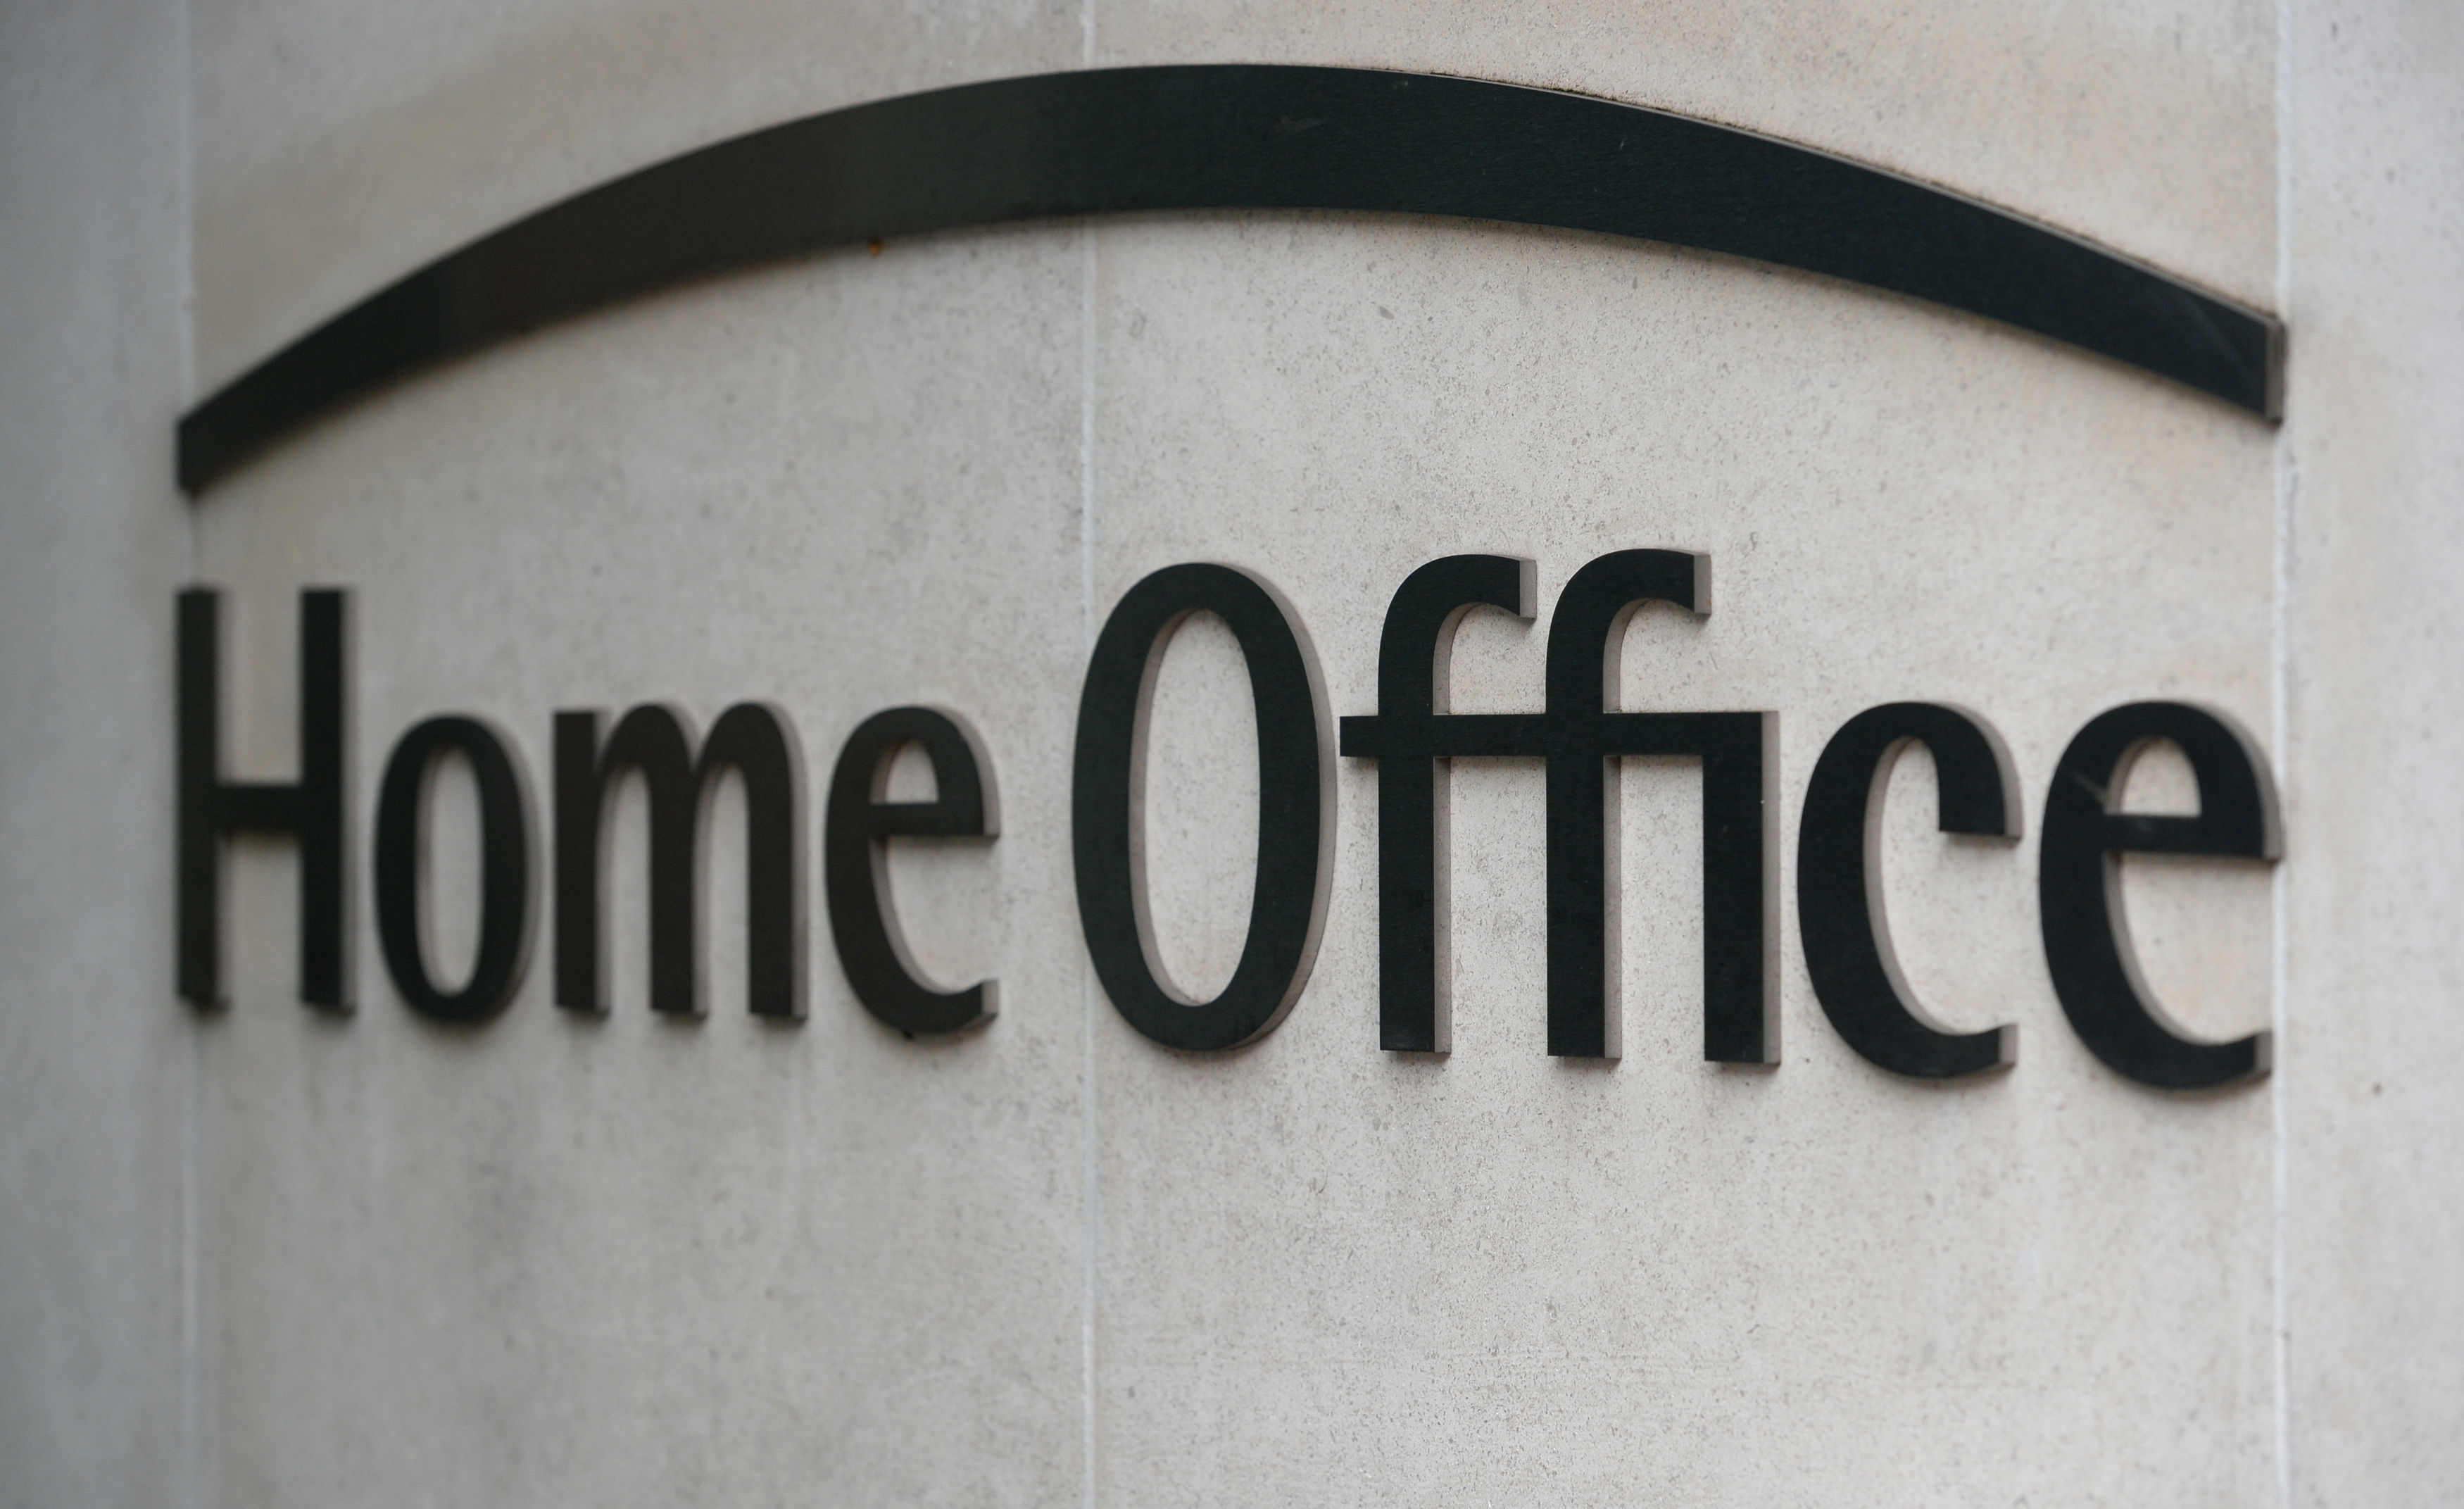 Signage for the Home Office in Westminster, London